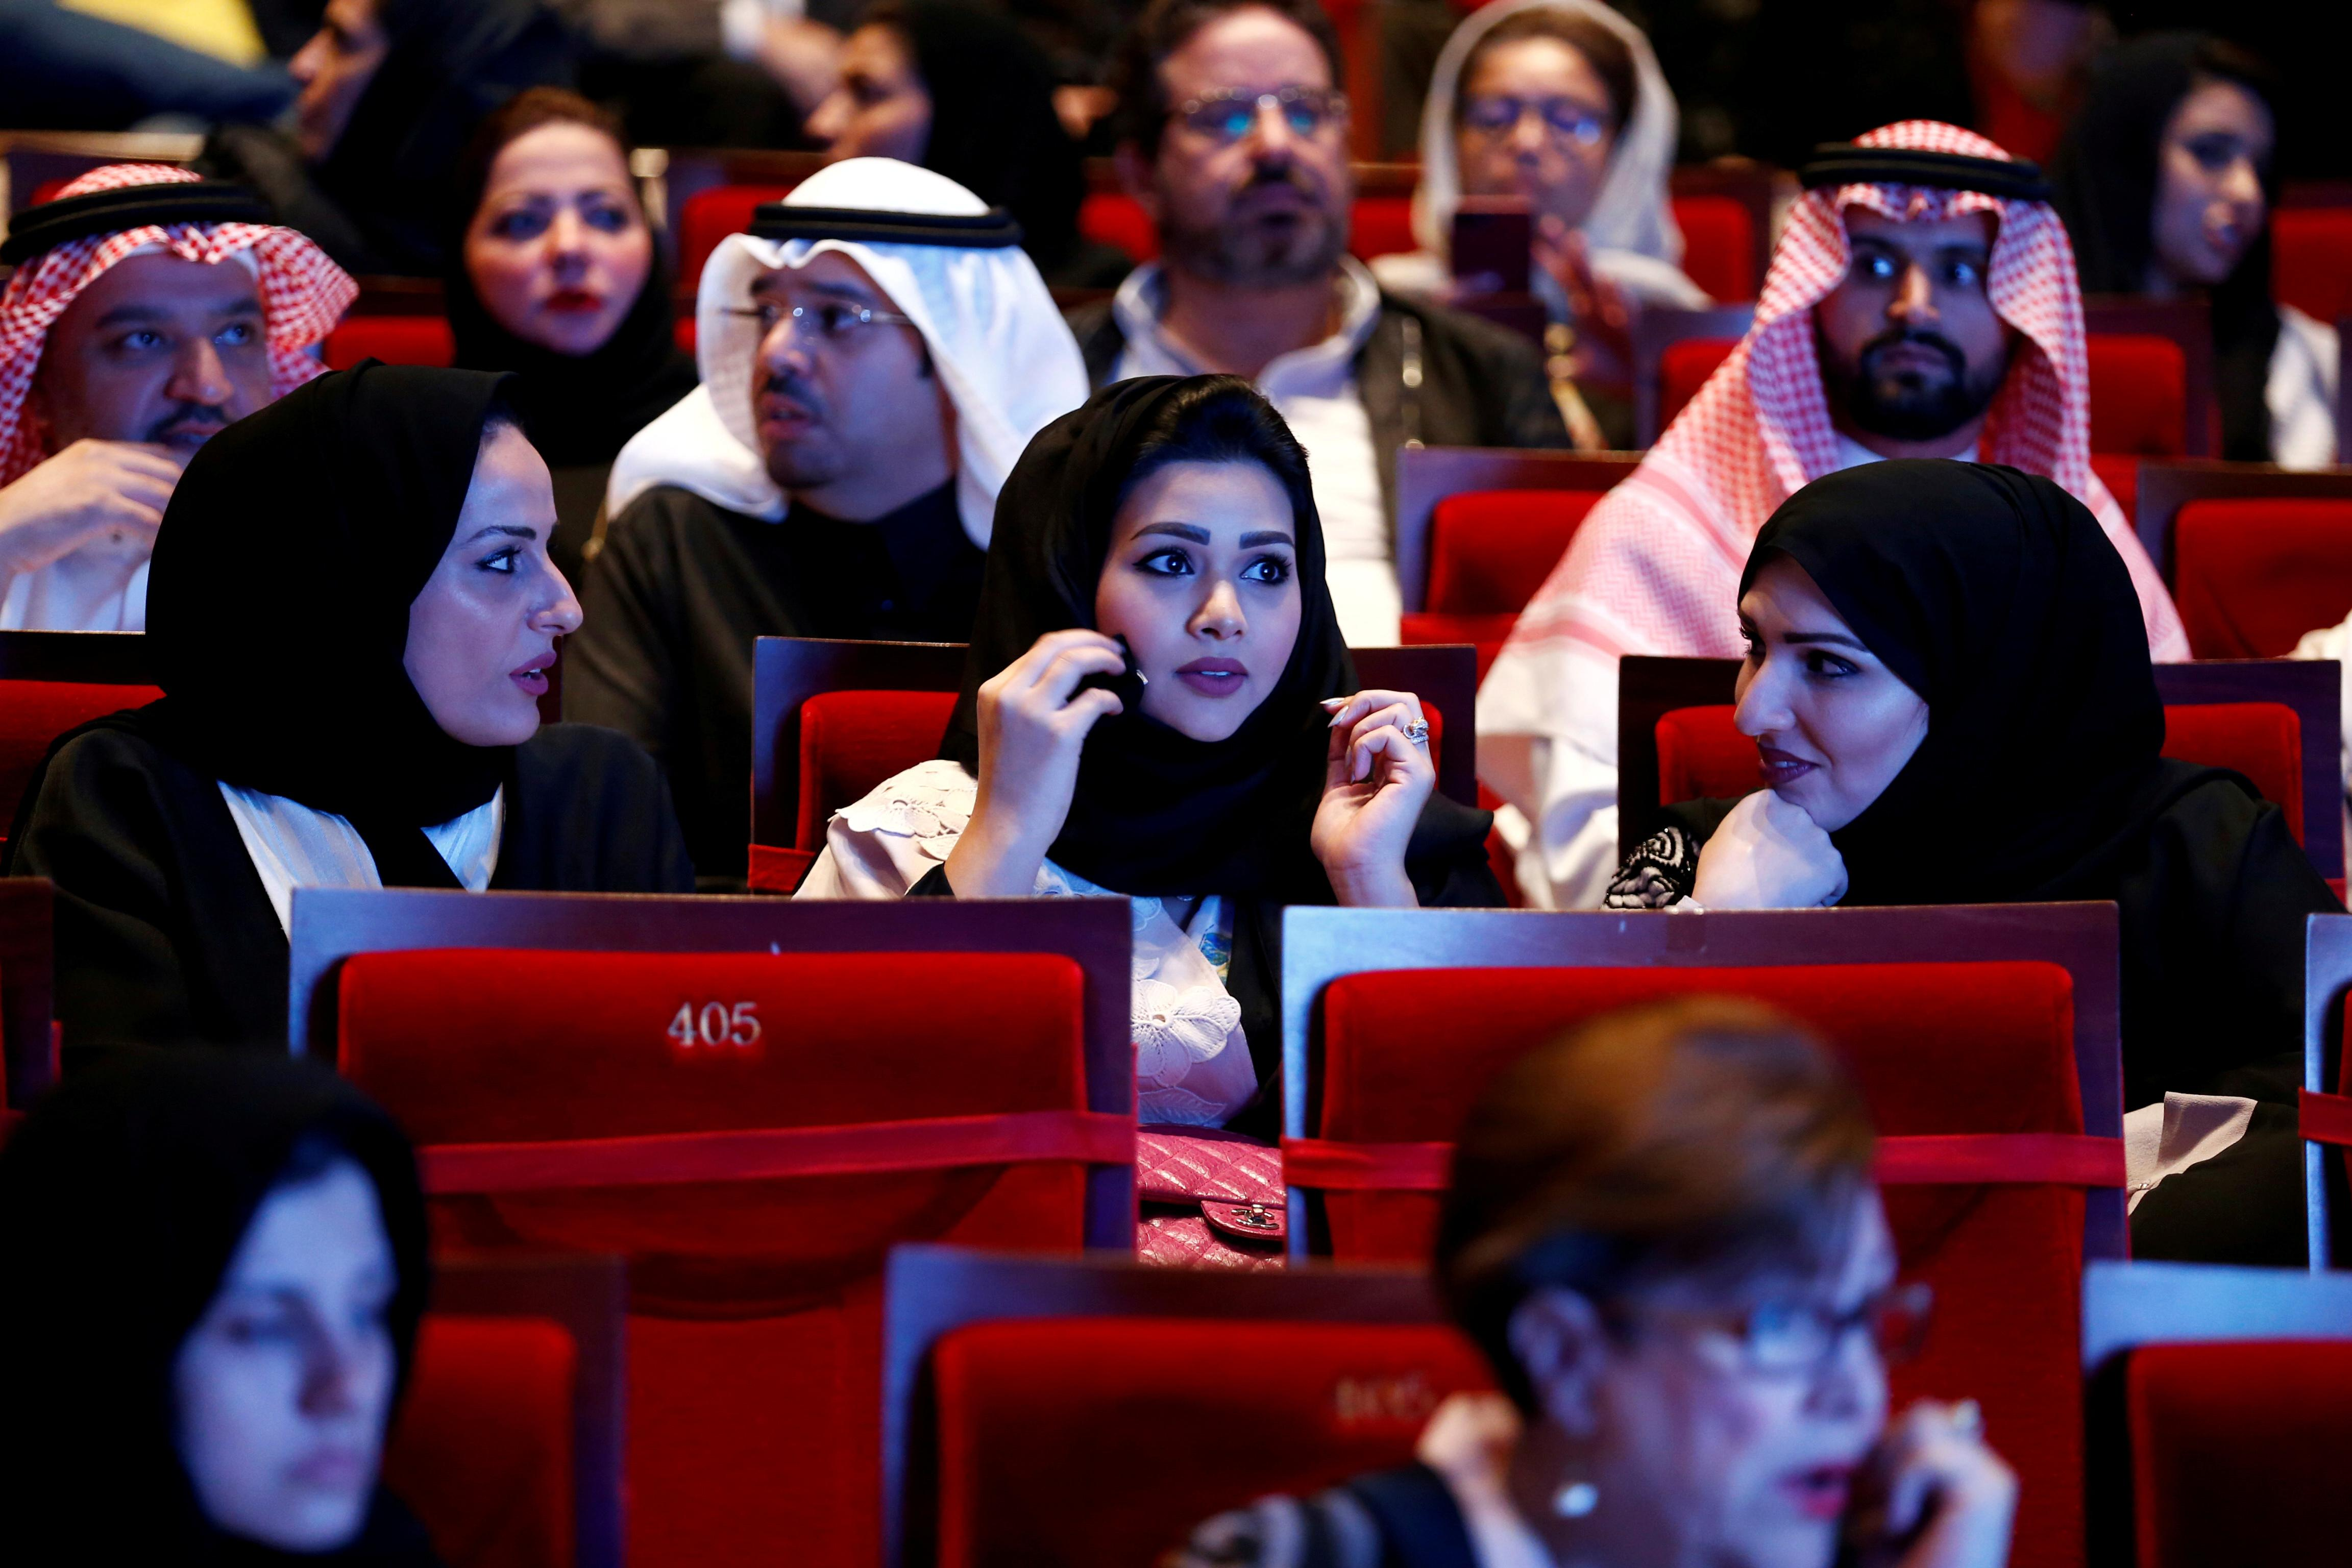 saudi arabia country screening In december, saudi arabia lifted a 35-year ban on commercial theaters, and this past weekend the first movie screenings were opened to the public.